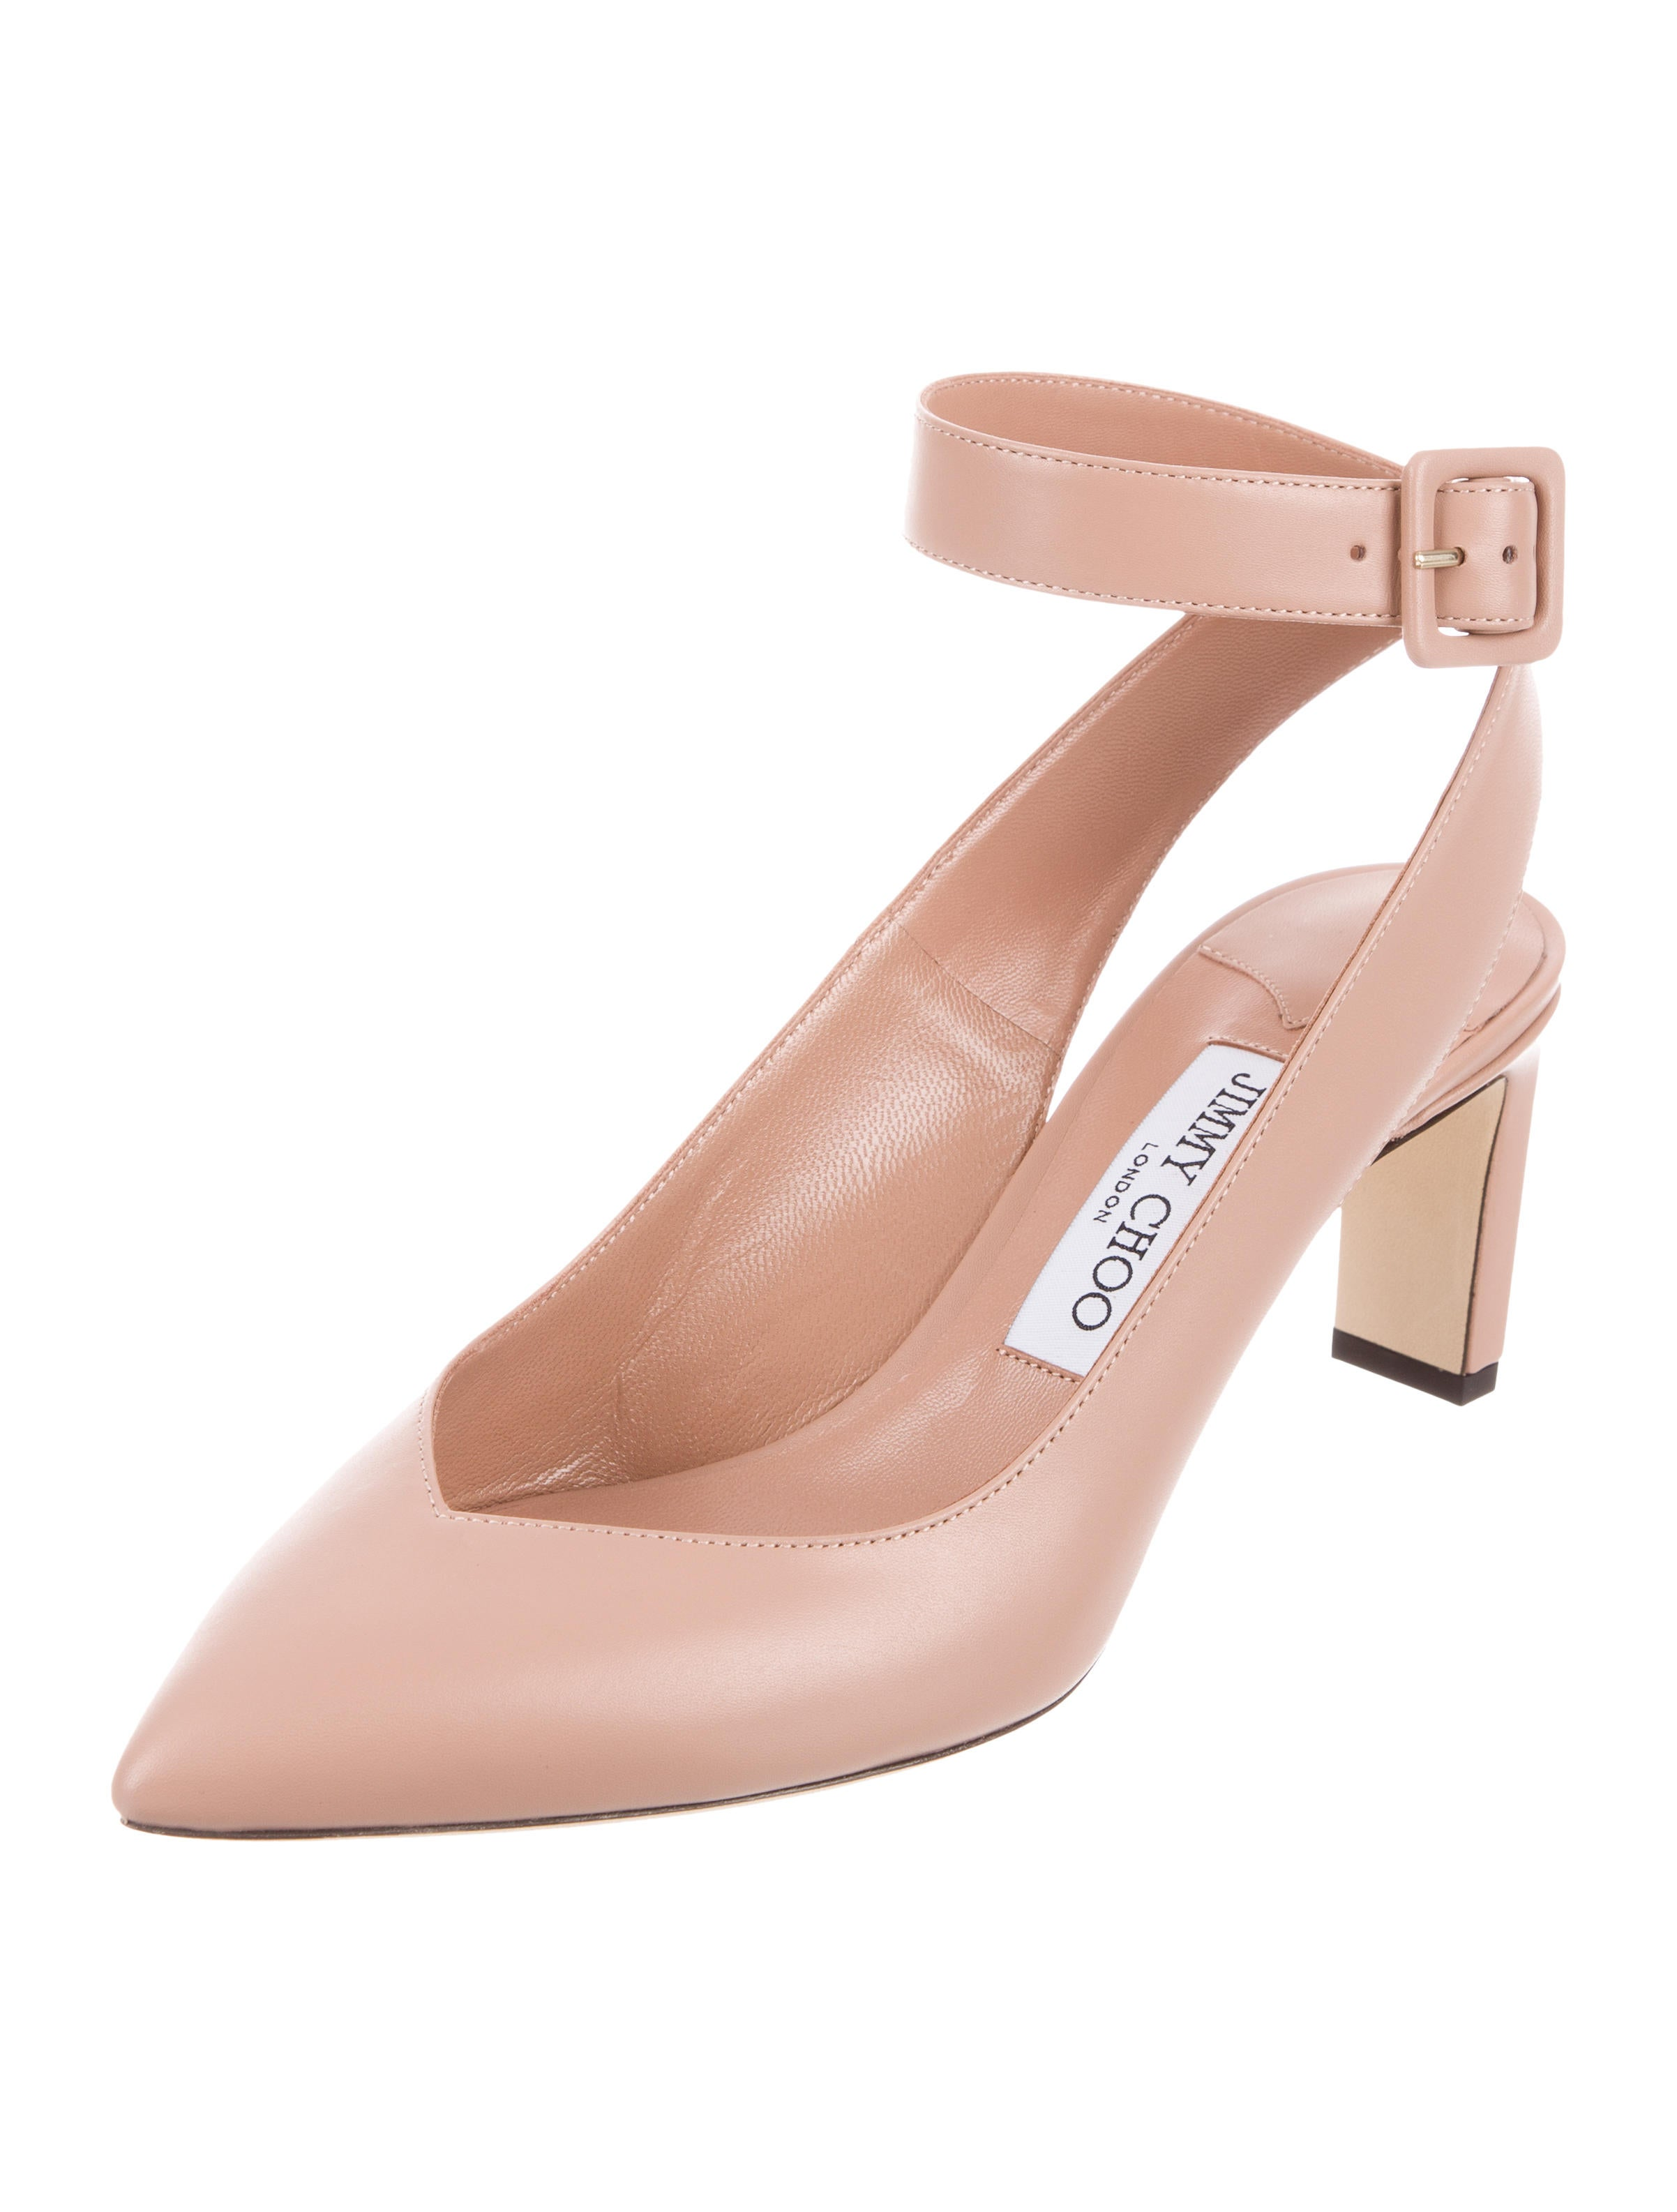 free shipping genuine Jimmy Choo Lou 65 Pumps w/ Tags clearance low price fee shipping discount STRlkjhvOm